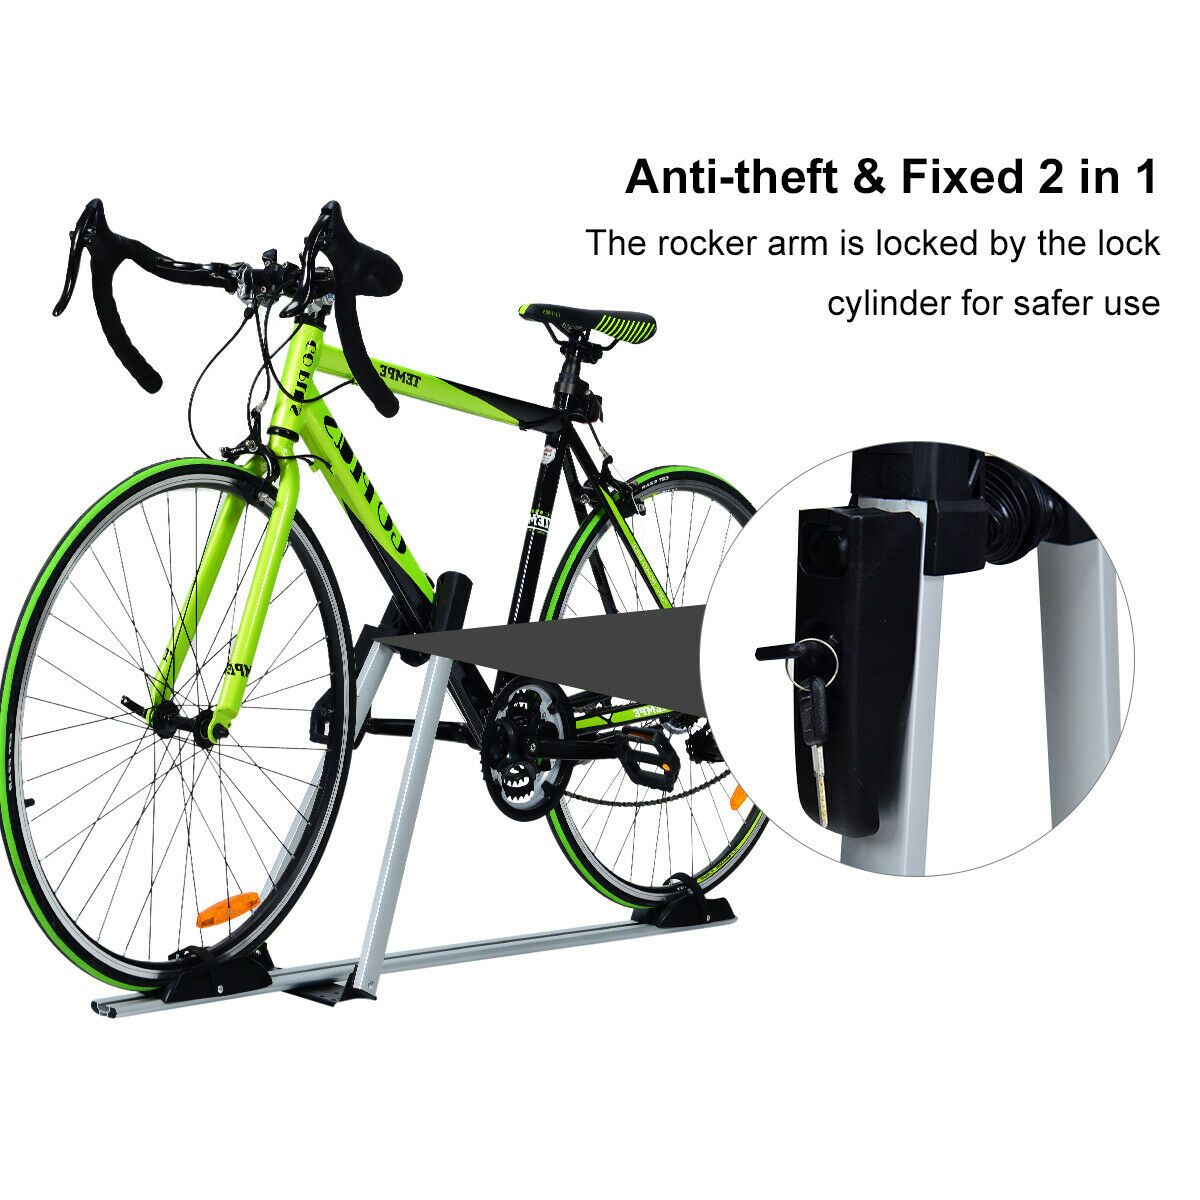 Upright Roof Mount Bike Rack with Antitheft Lock in 2020